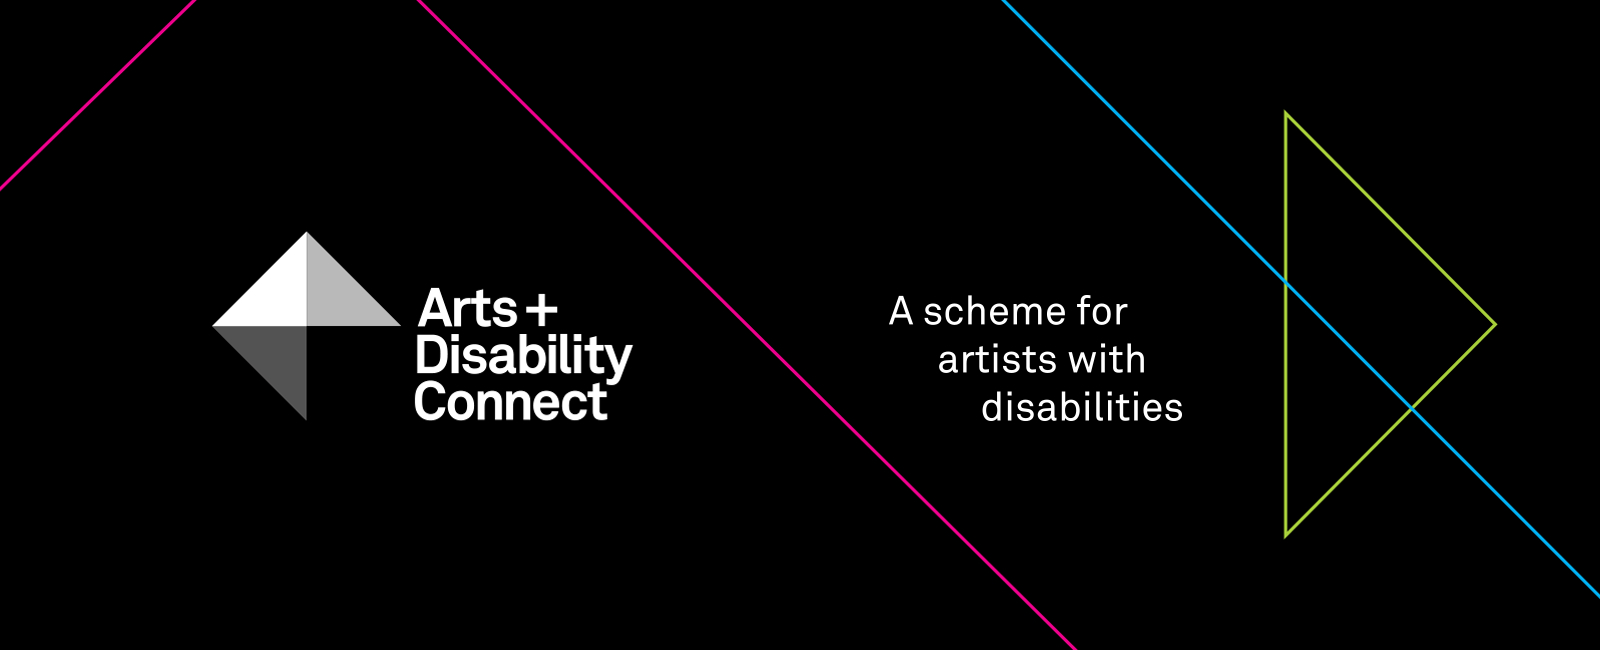 Arts and Disability Connect funding scheme for artists with disabilities 2018.